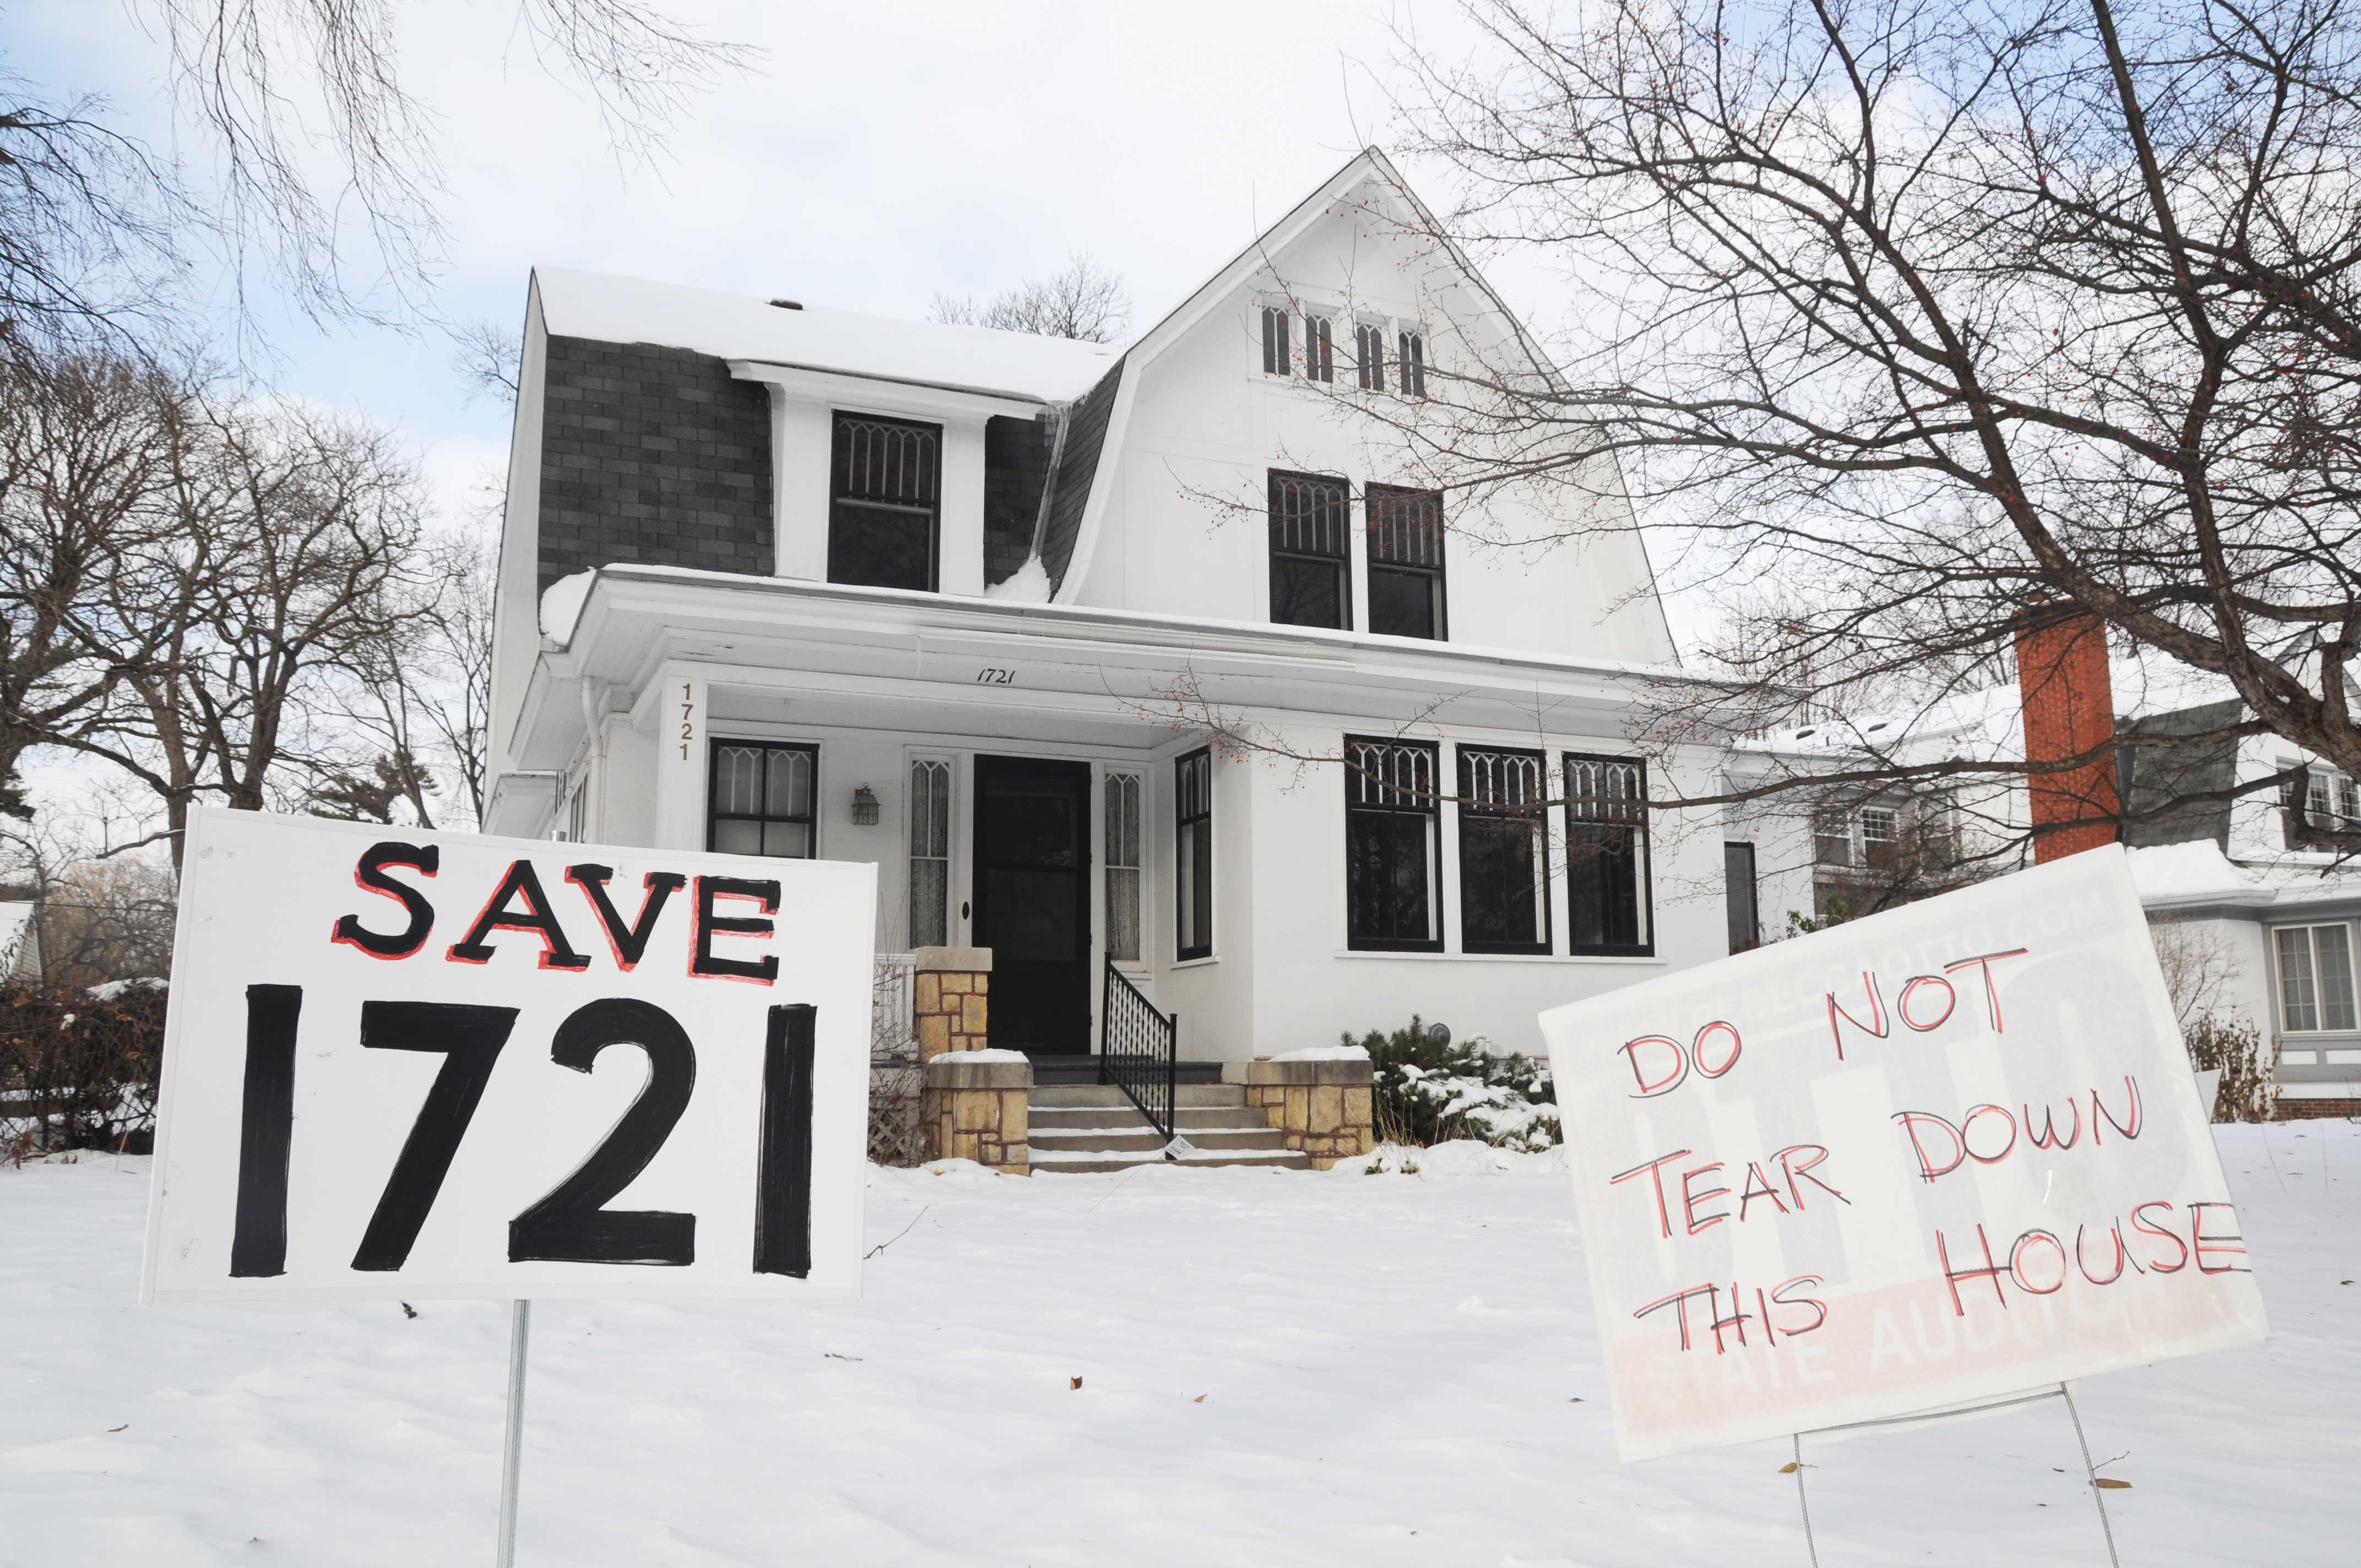 Organizers rally to save historic Tangletown house from demolition